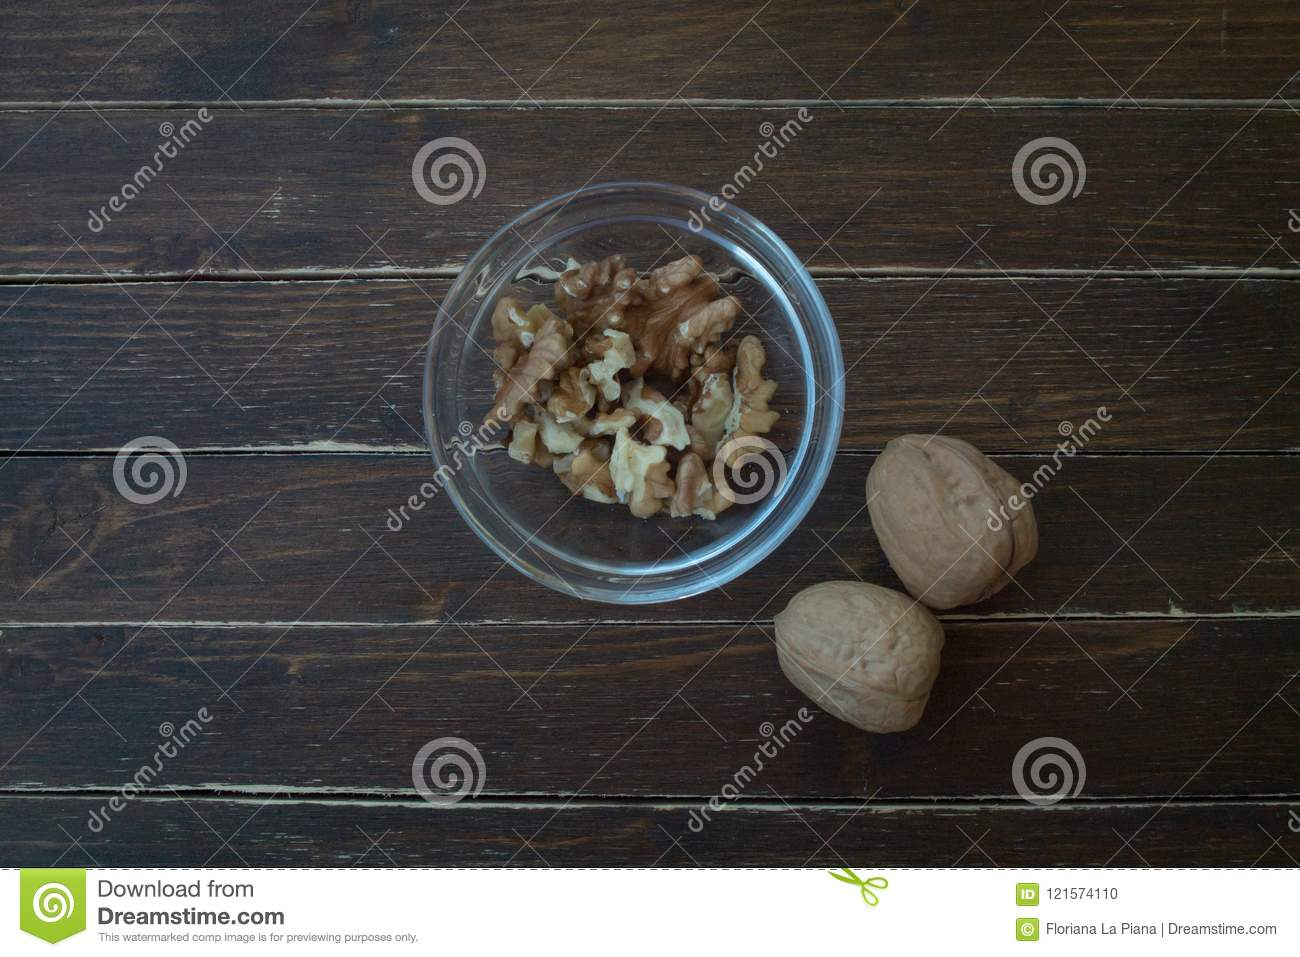 Walnuts in a transparent bowl on wood from above